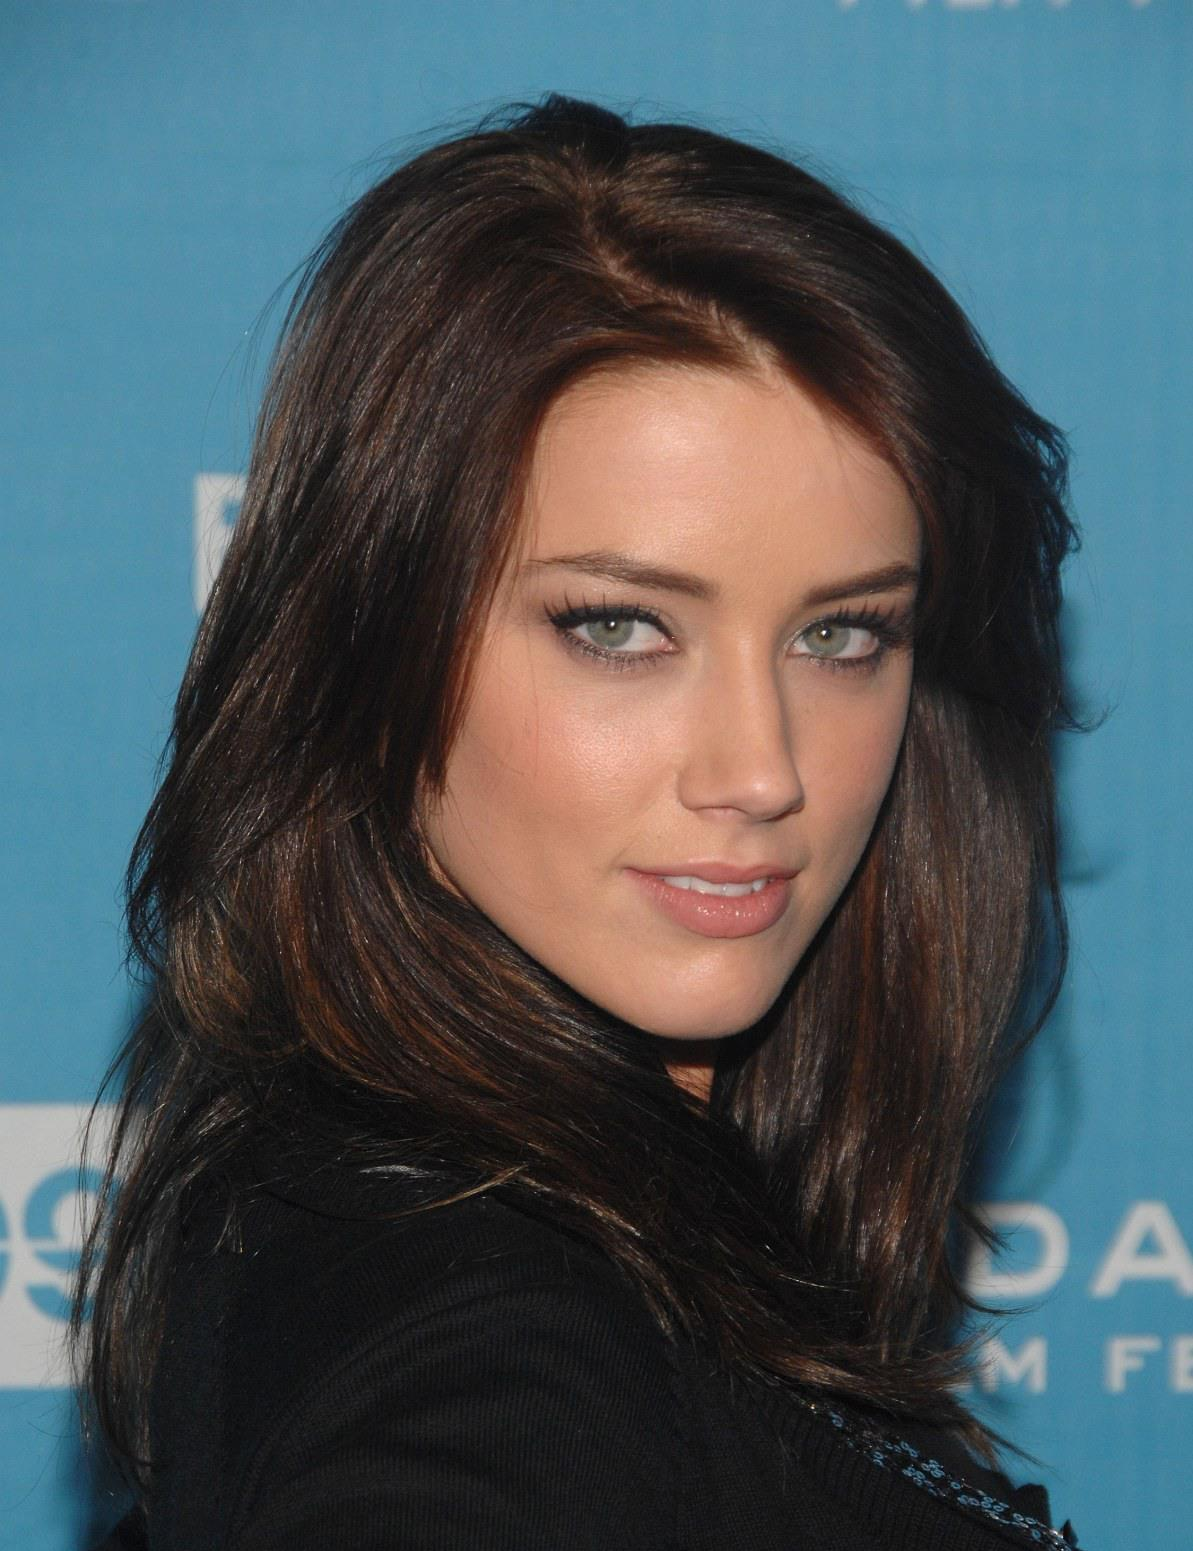 Amber Heard images Amber :) HD wallpaper and background photos ... Amber Heard